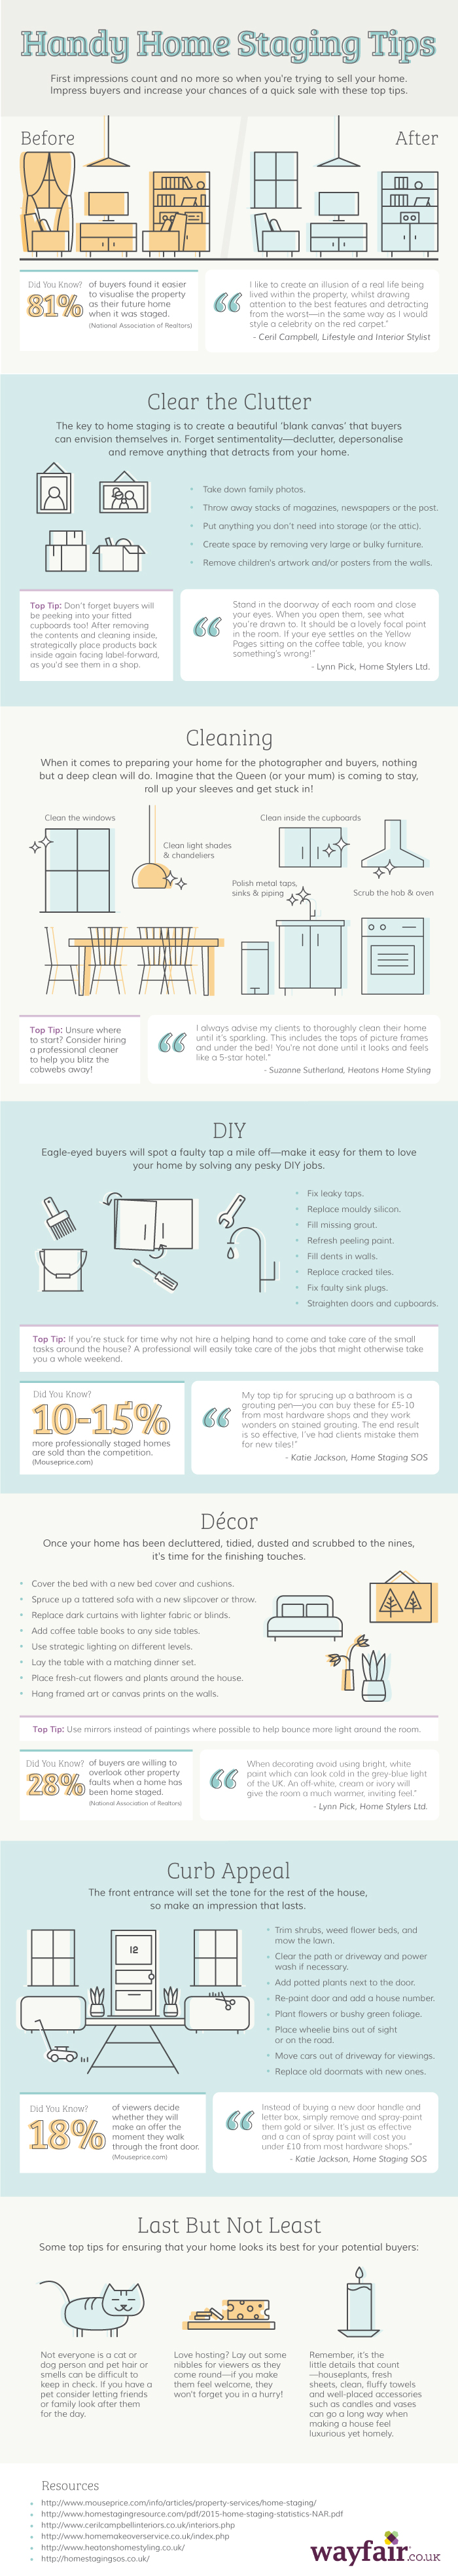 How to Sell Your Property Fast With Home Staging-infographic-plaza